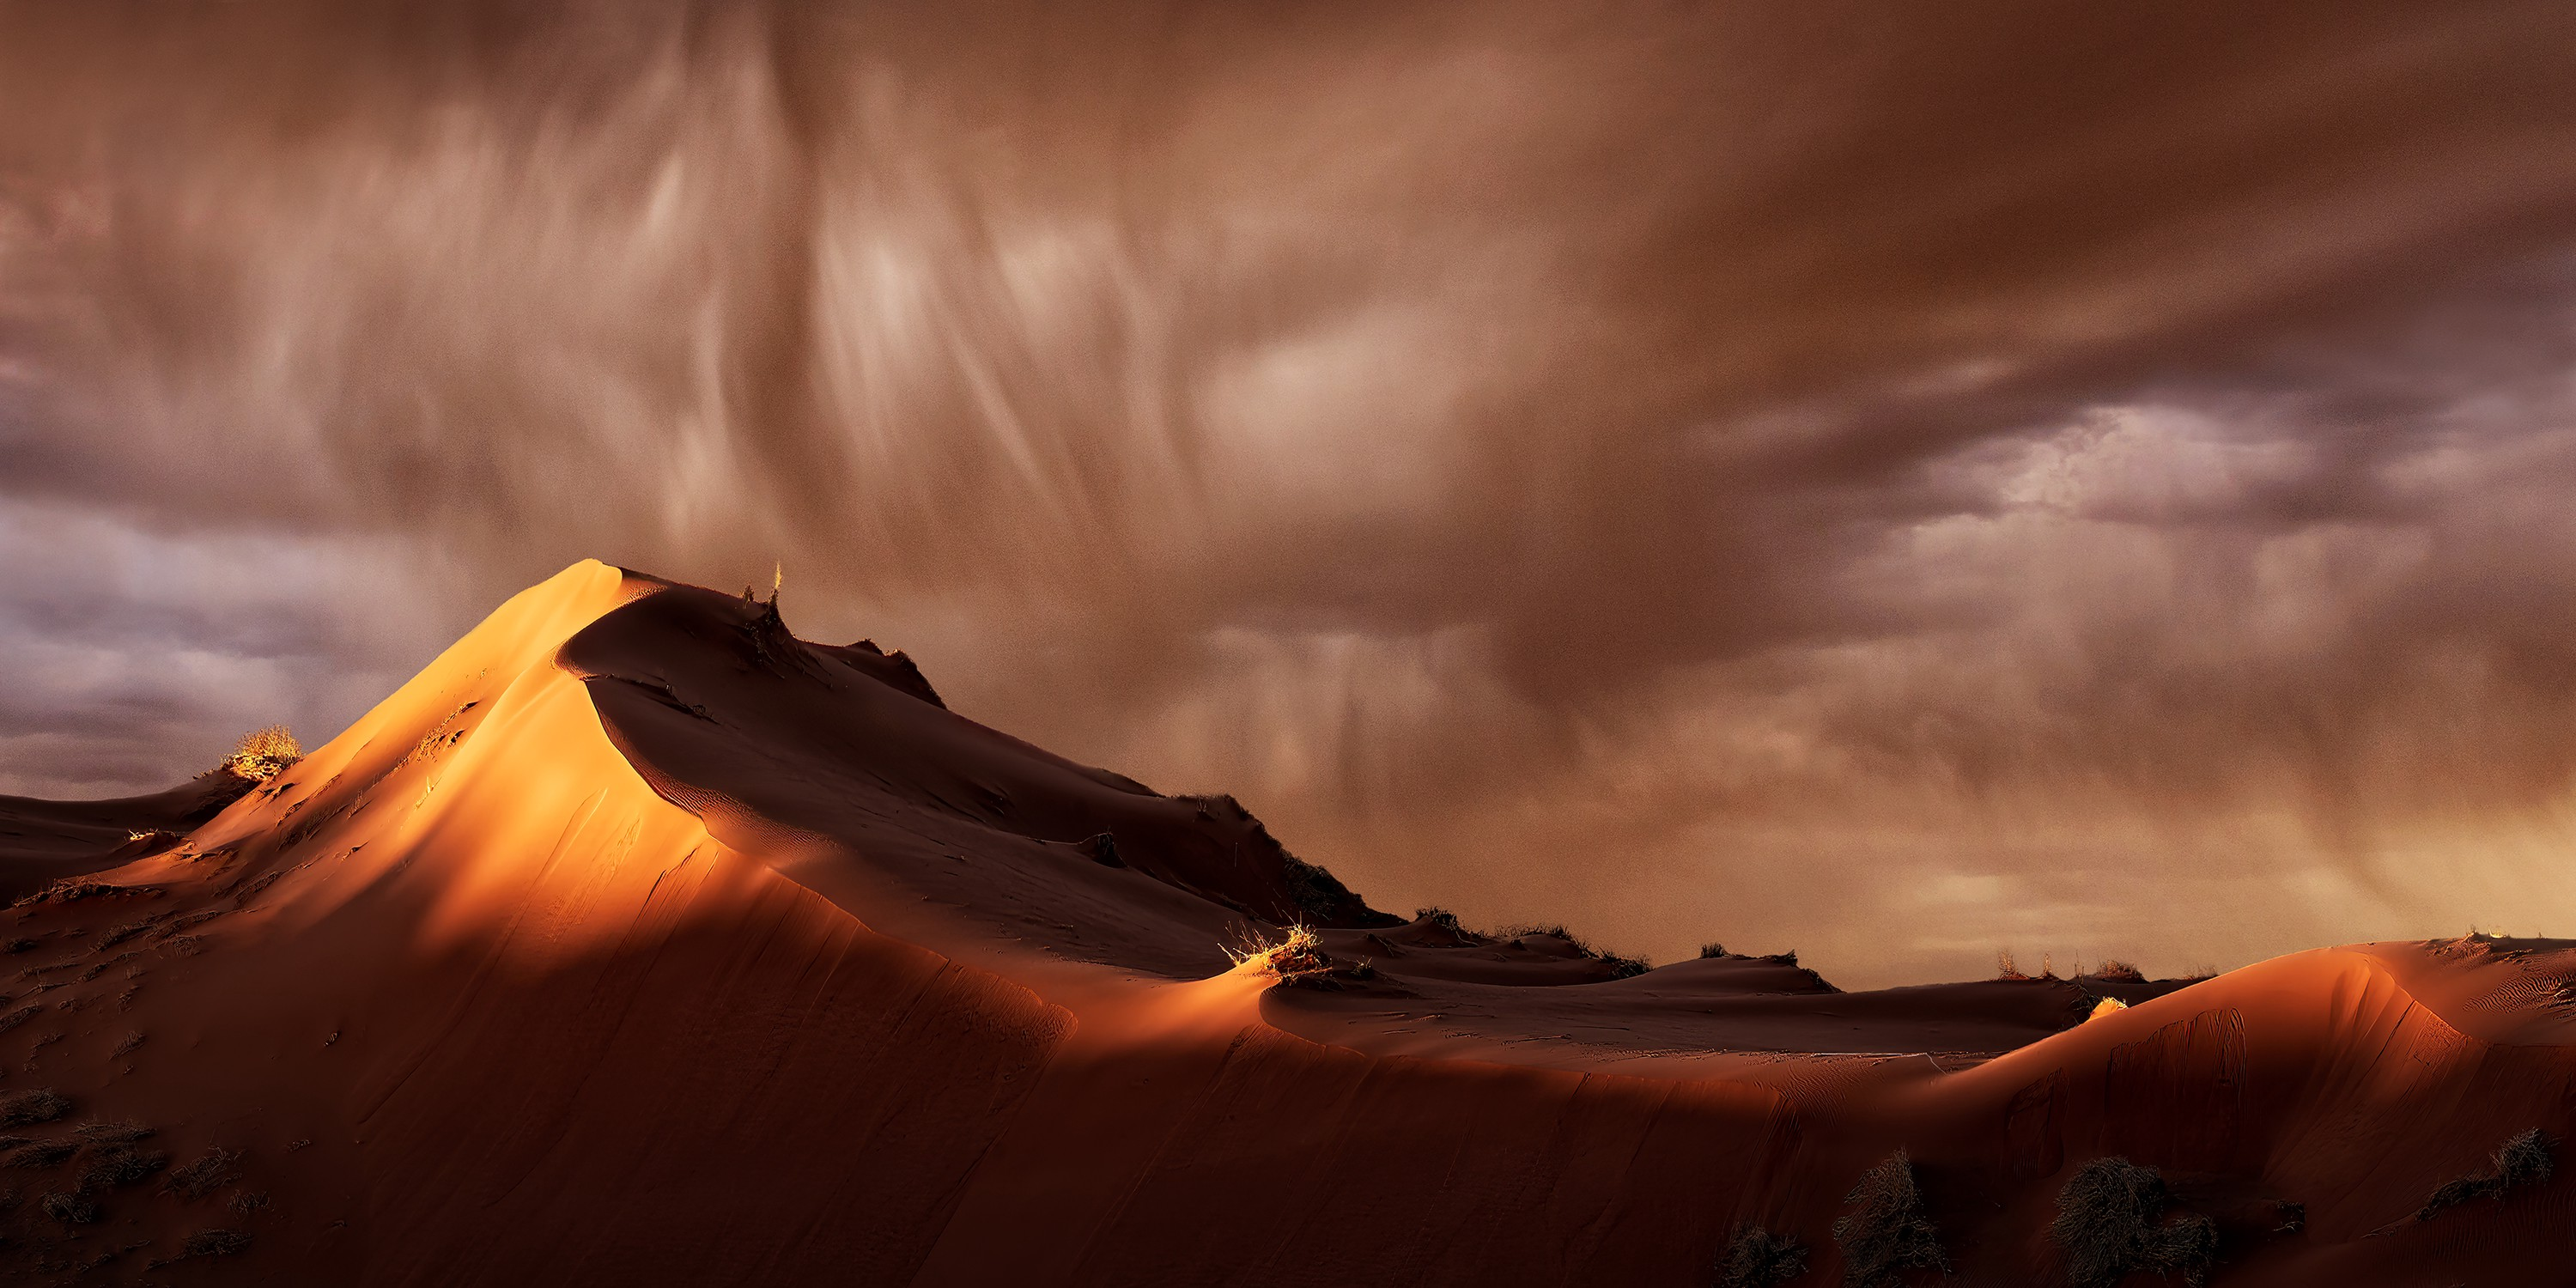 A fine art photograph of a windblown desert hill with a small flame coming from a barely visible camp